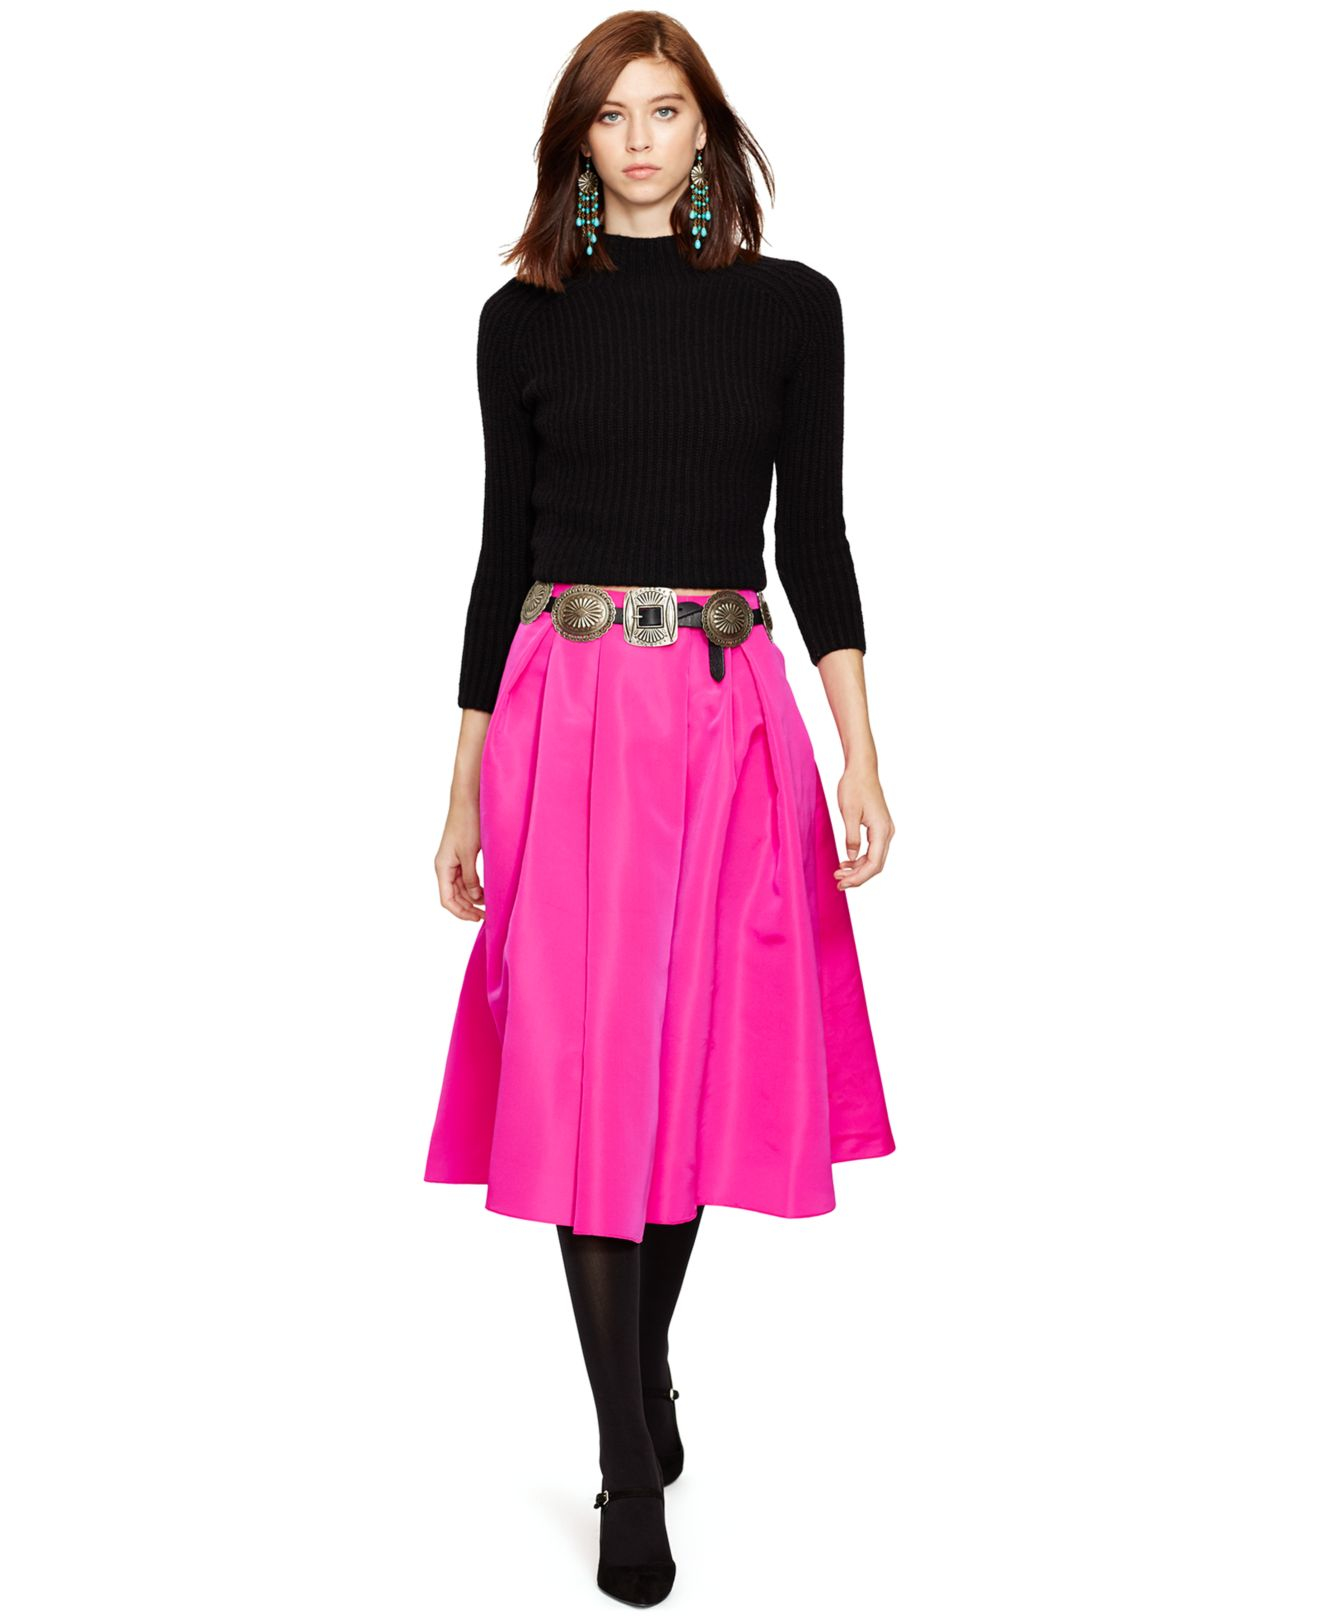 Polo ralph lauren Silk Pleated A-line Skirt in Pink | Lyst